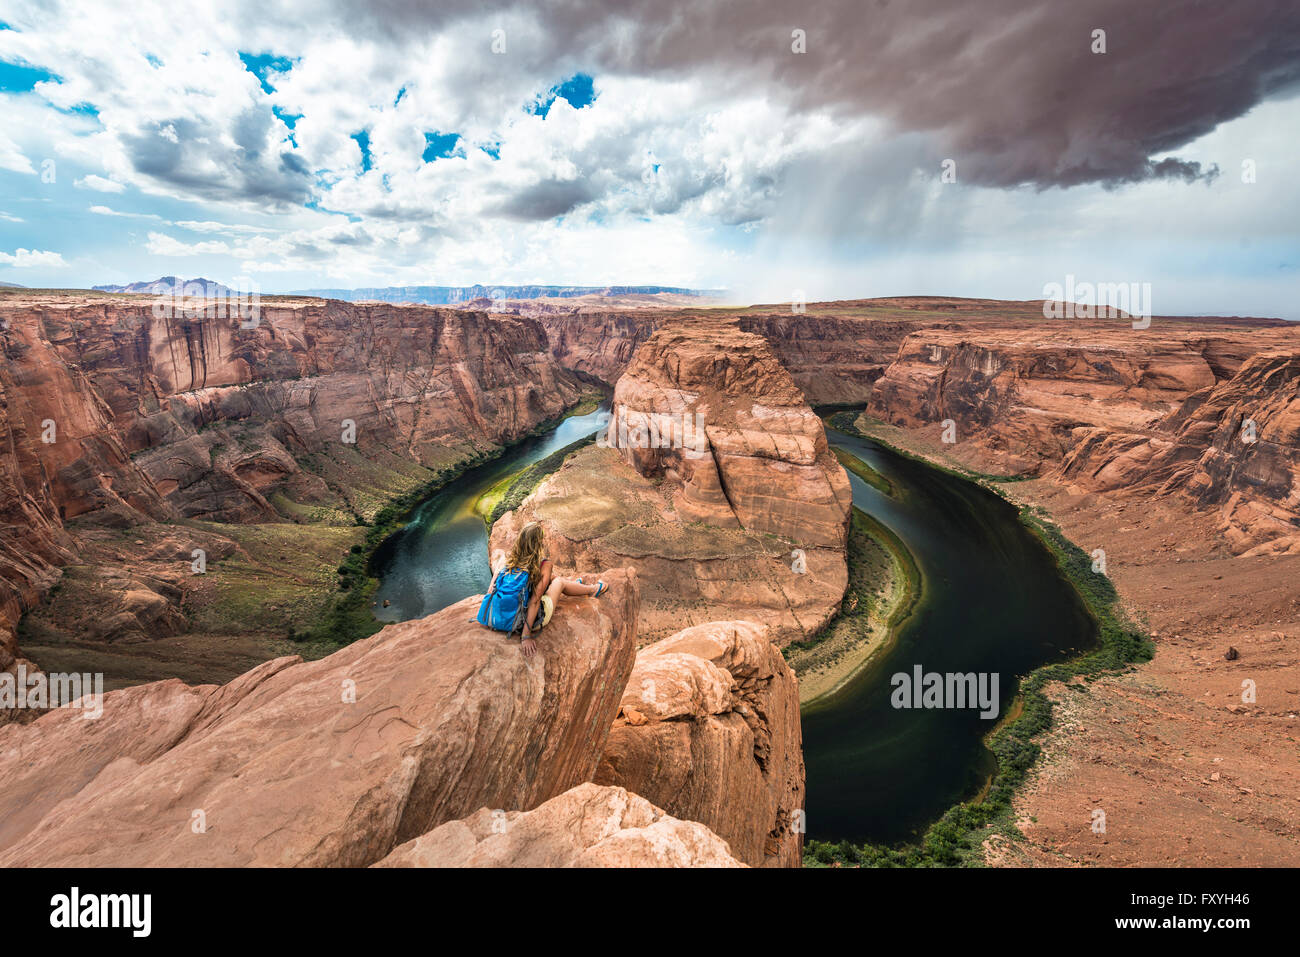 Tourist siting on a rock, looking over the Horseshoe Bend, bend of the Colorado River, King Bend, Glen Canyon National - Stock Image